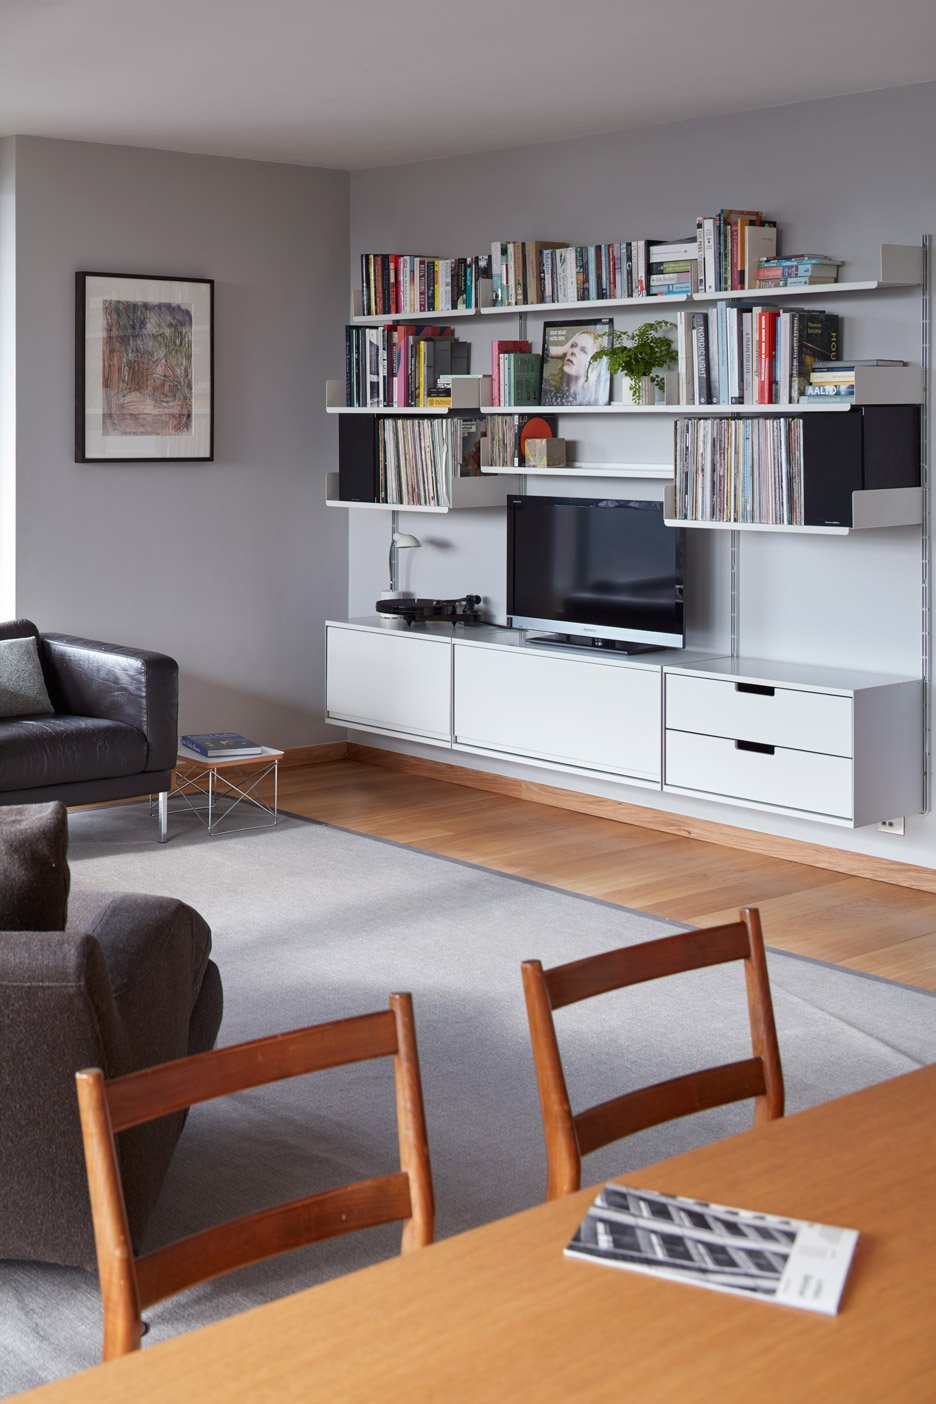 apartment interior design. Barbican flat by Laurence Quinn Architects renovates in London s Estate